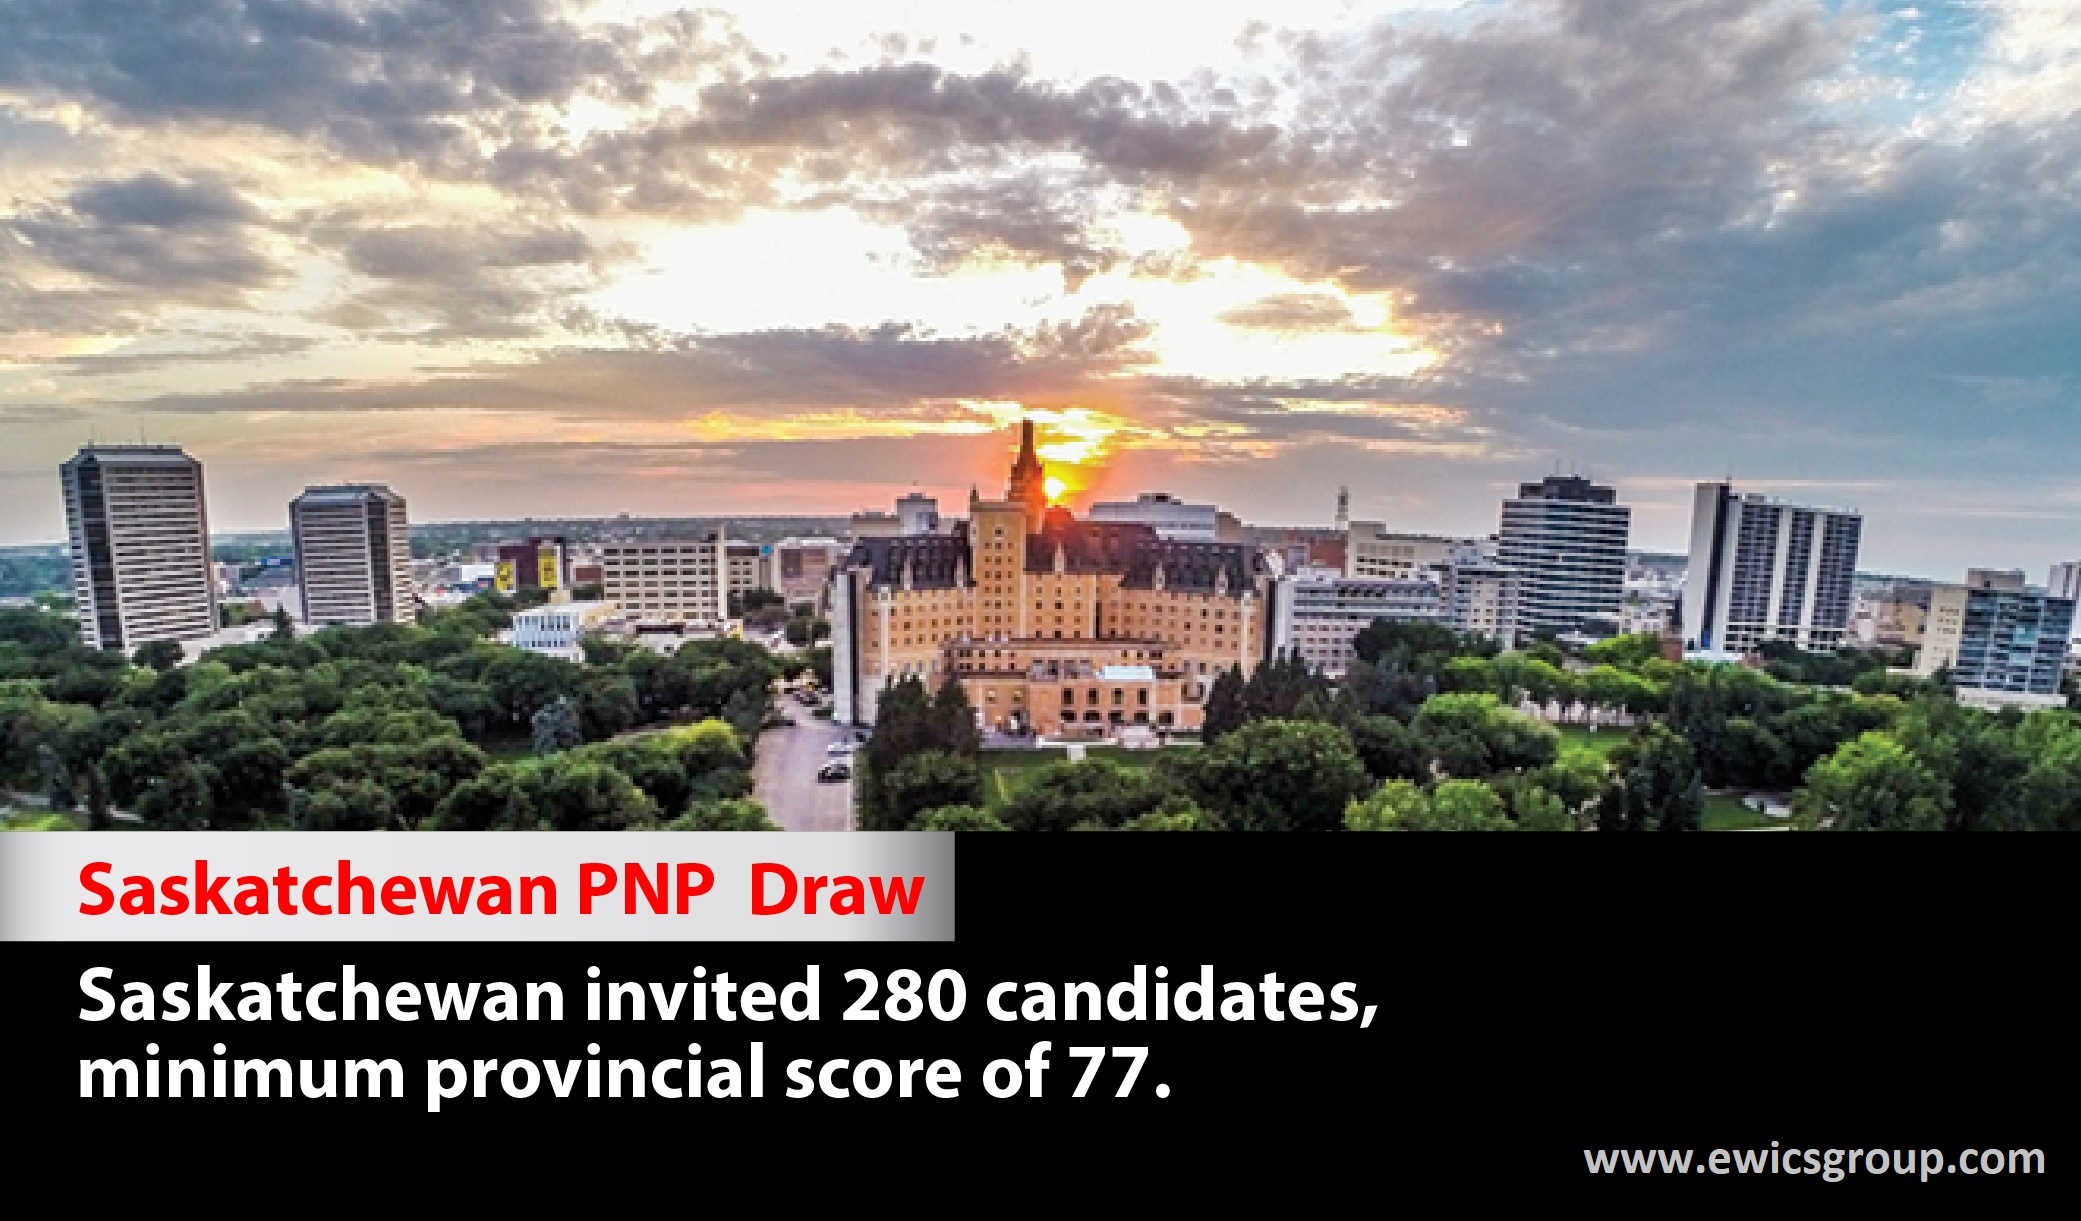 In the latest Saskatchewan PNP draw held on July 21, 2021, the province of Saskatchewan issued a total of 280 invitations